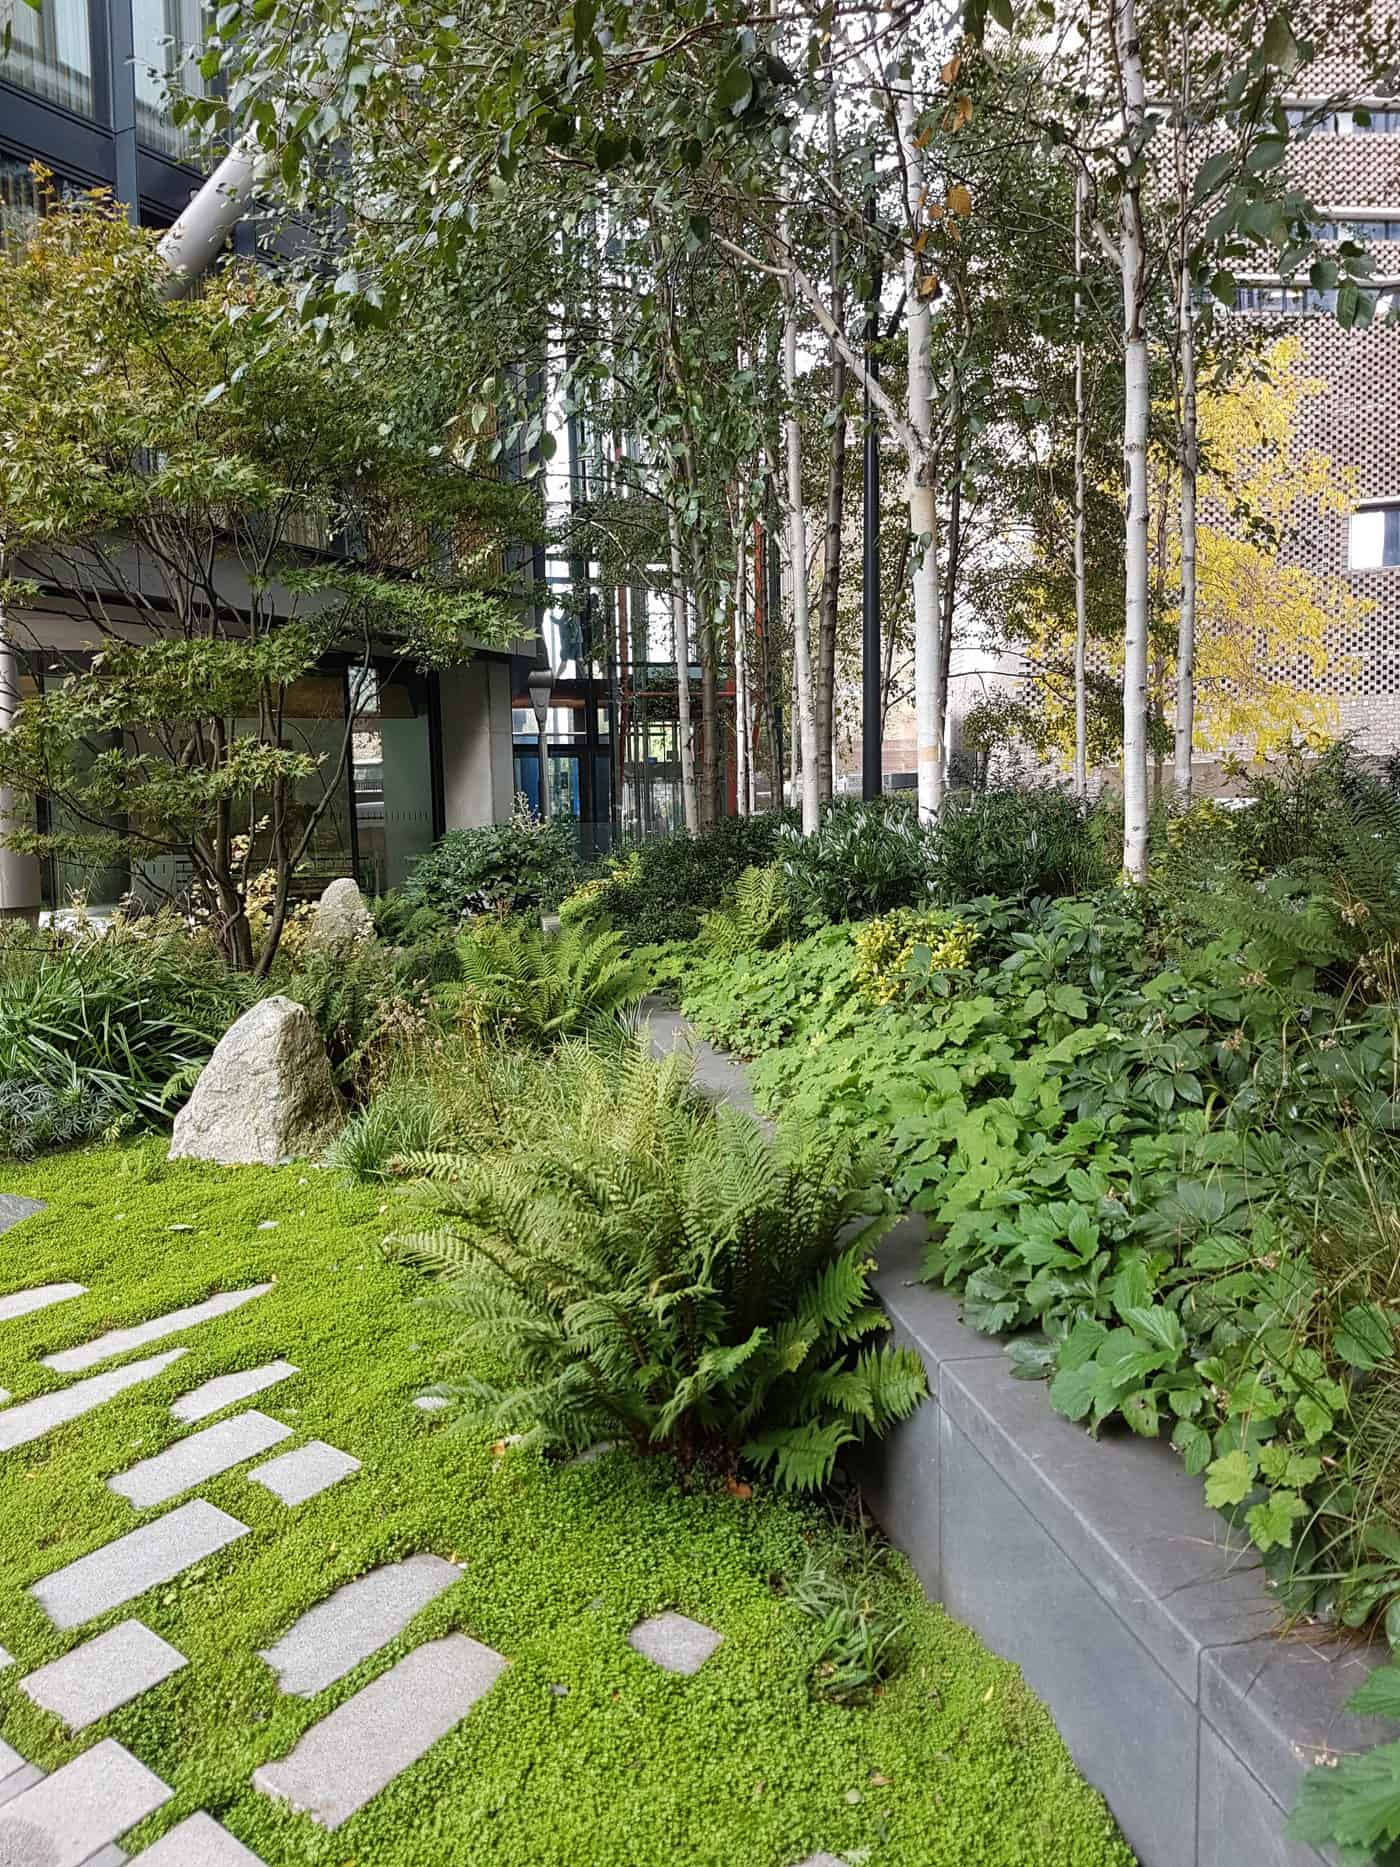 NEO Bankside garden ground cover plants shade